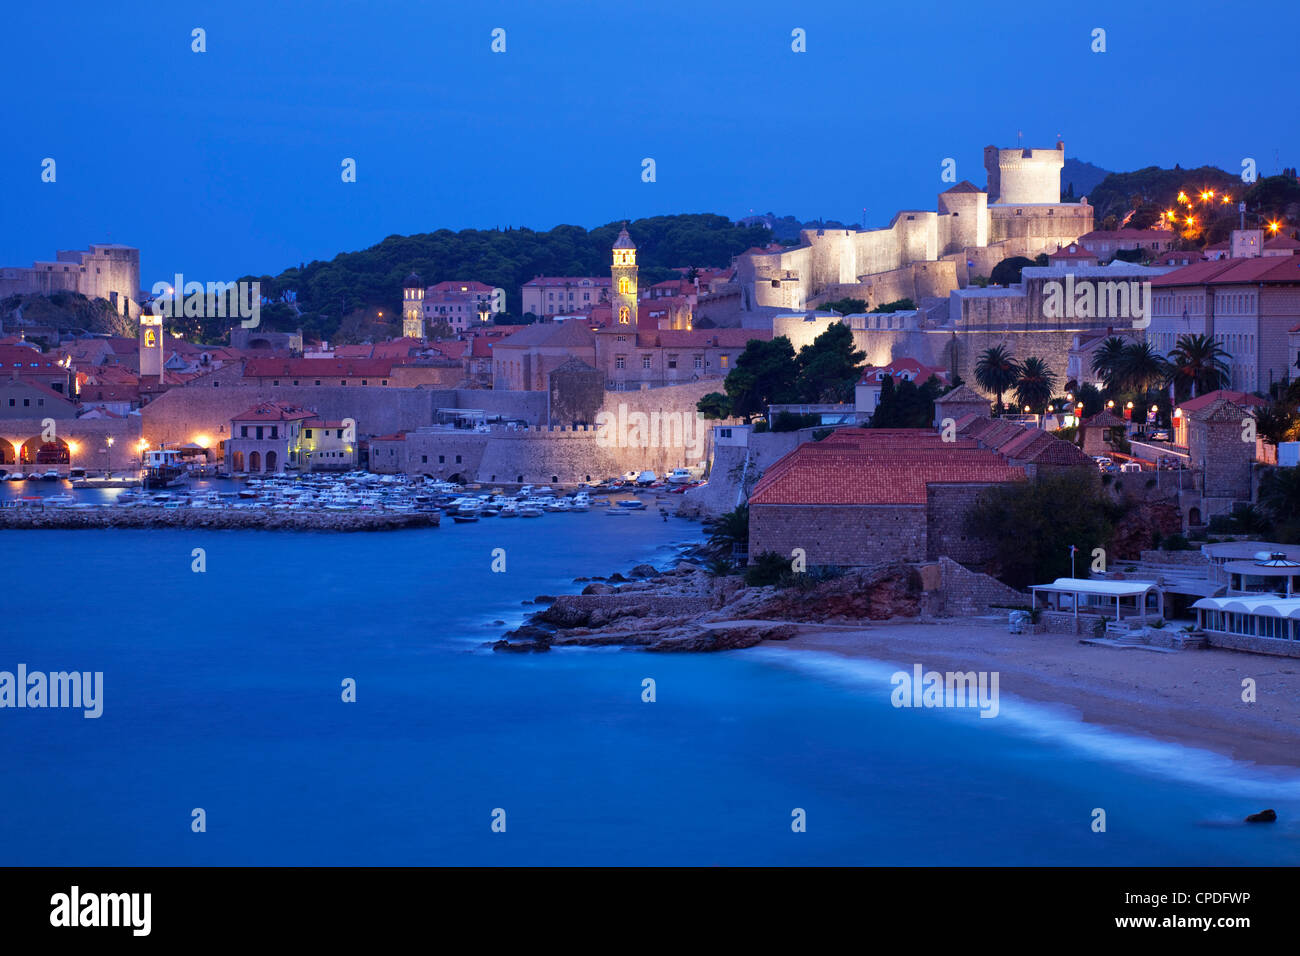 View of Old Town in the early morning, UNESCO World Heritage Site, Dubrovnik, Croatia, Europe Stock Photo